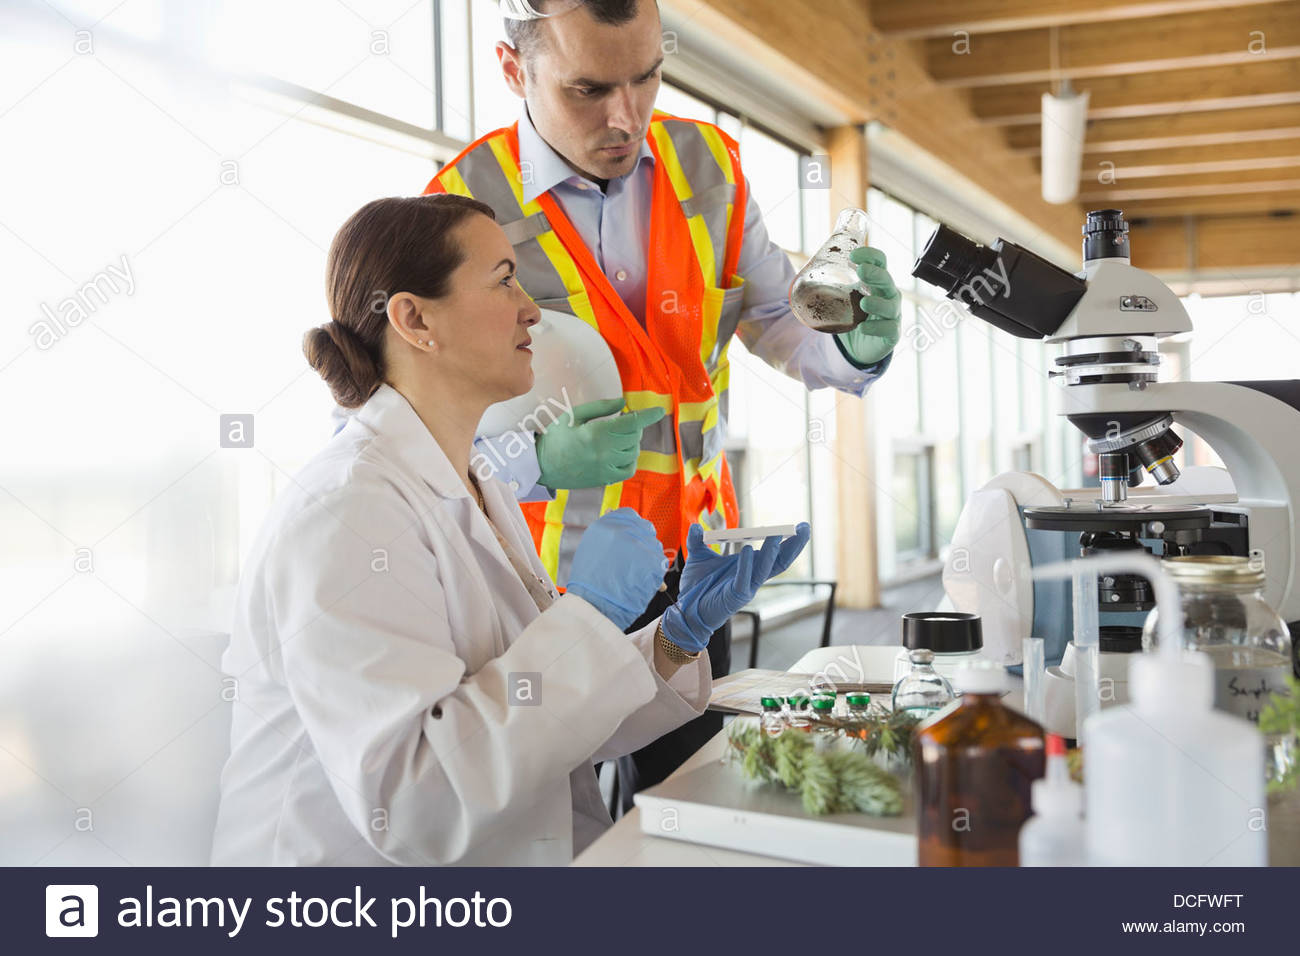 Technicians analyzing soil samples in laboratory - Stock Image